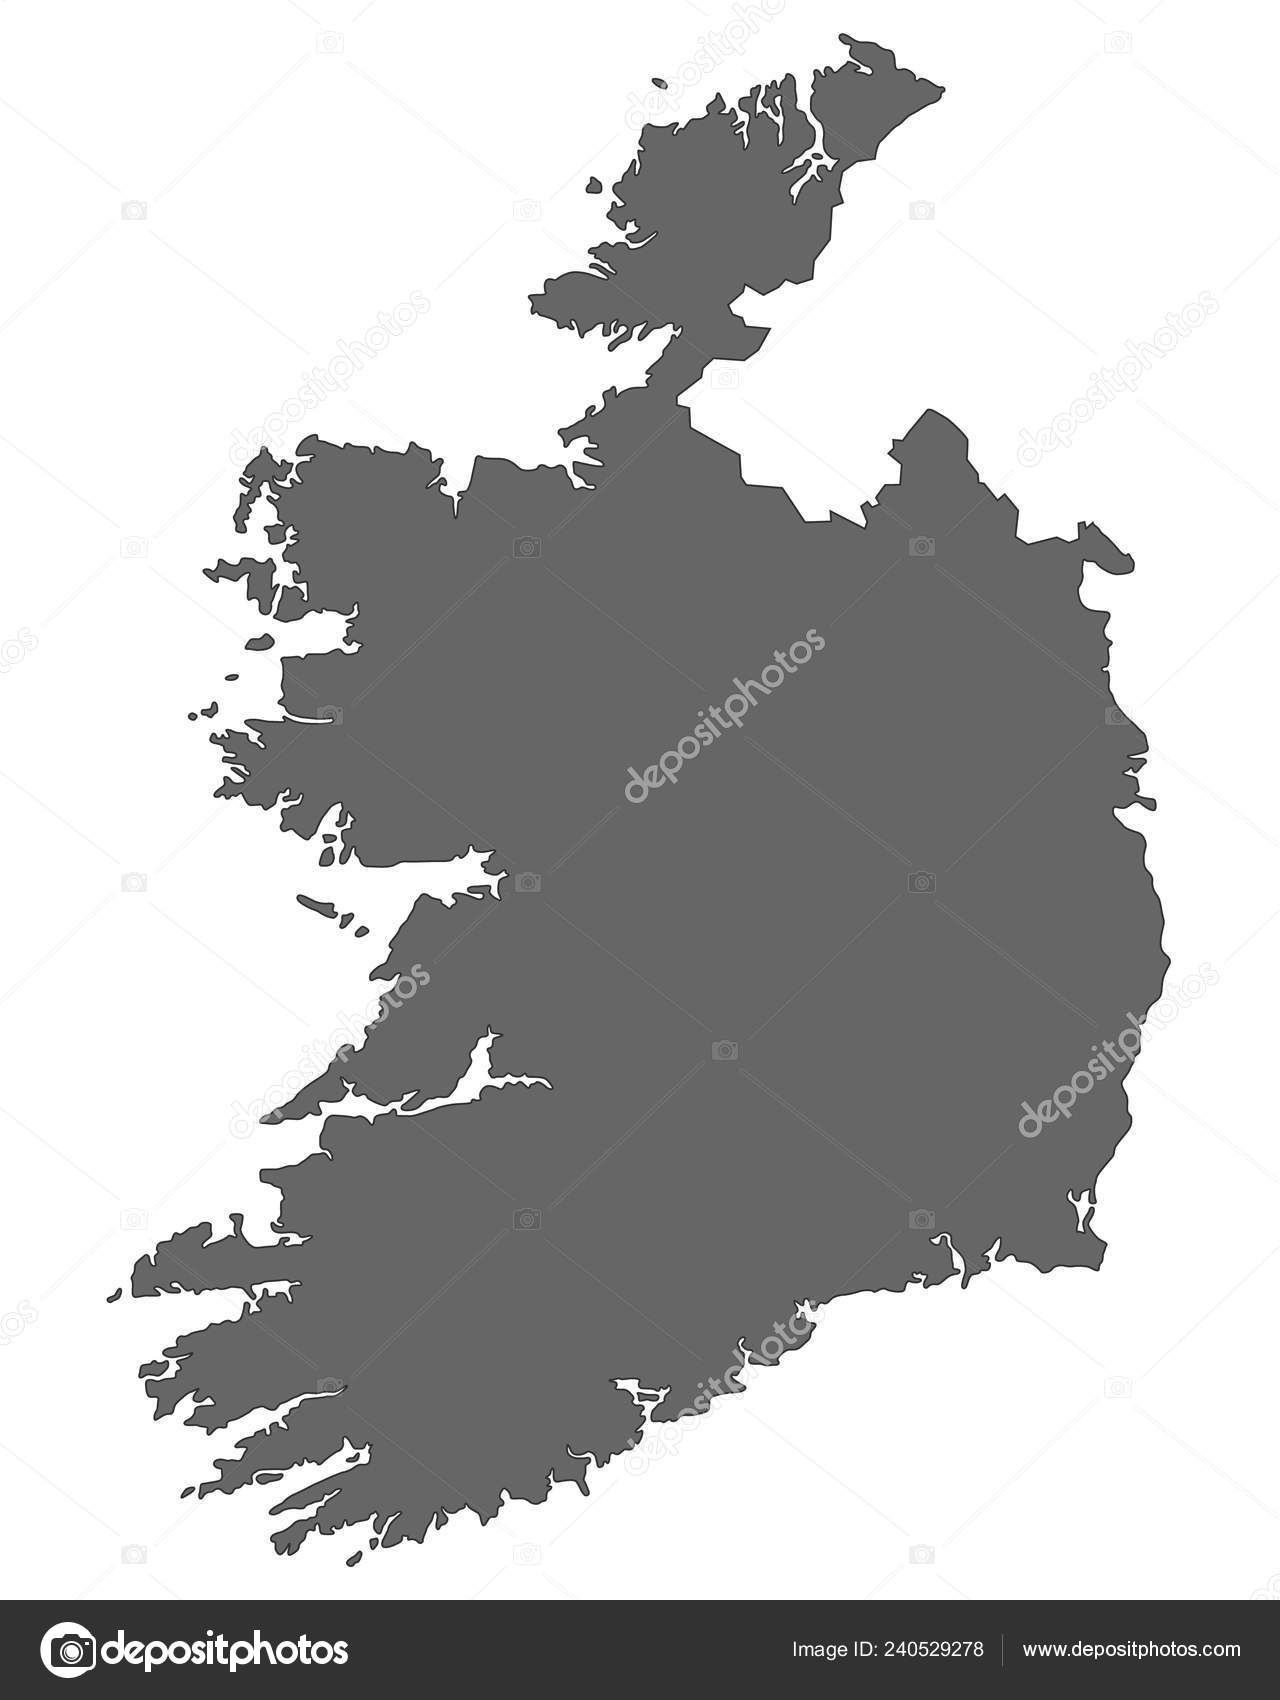 Map Of Ireland 1600.Map Ireland Detailed Vector File Stock Vector C Ii